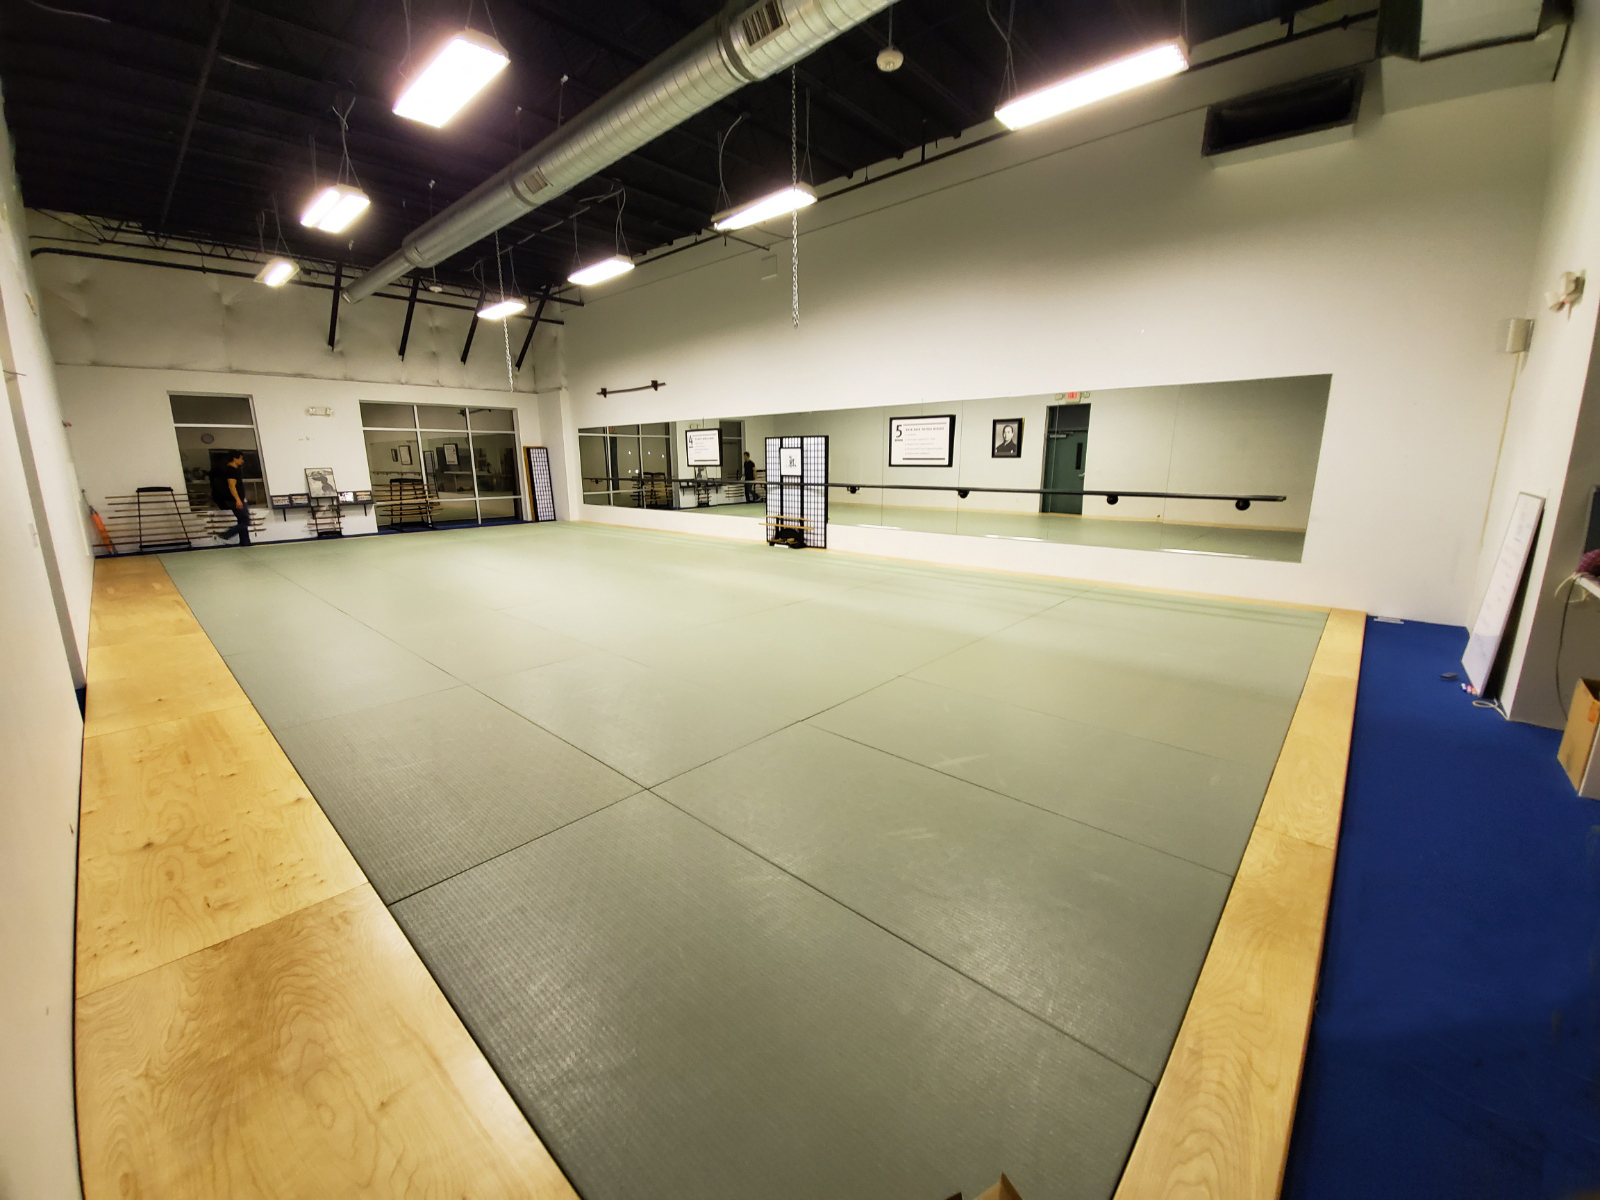 studio rental | Boulder dojo space for rent by the hour